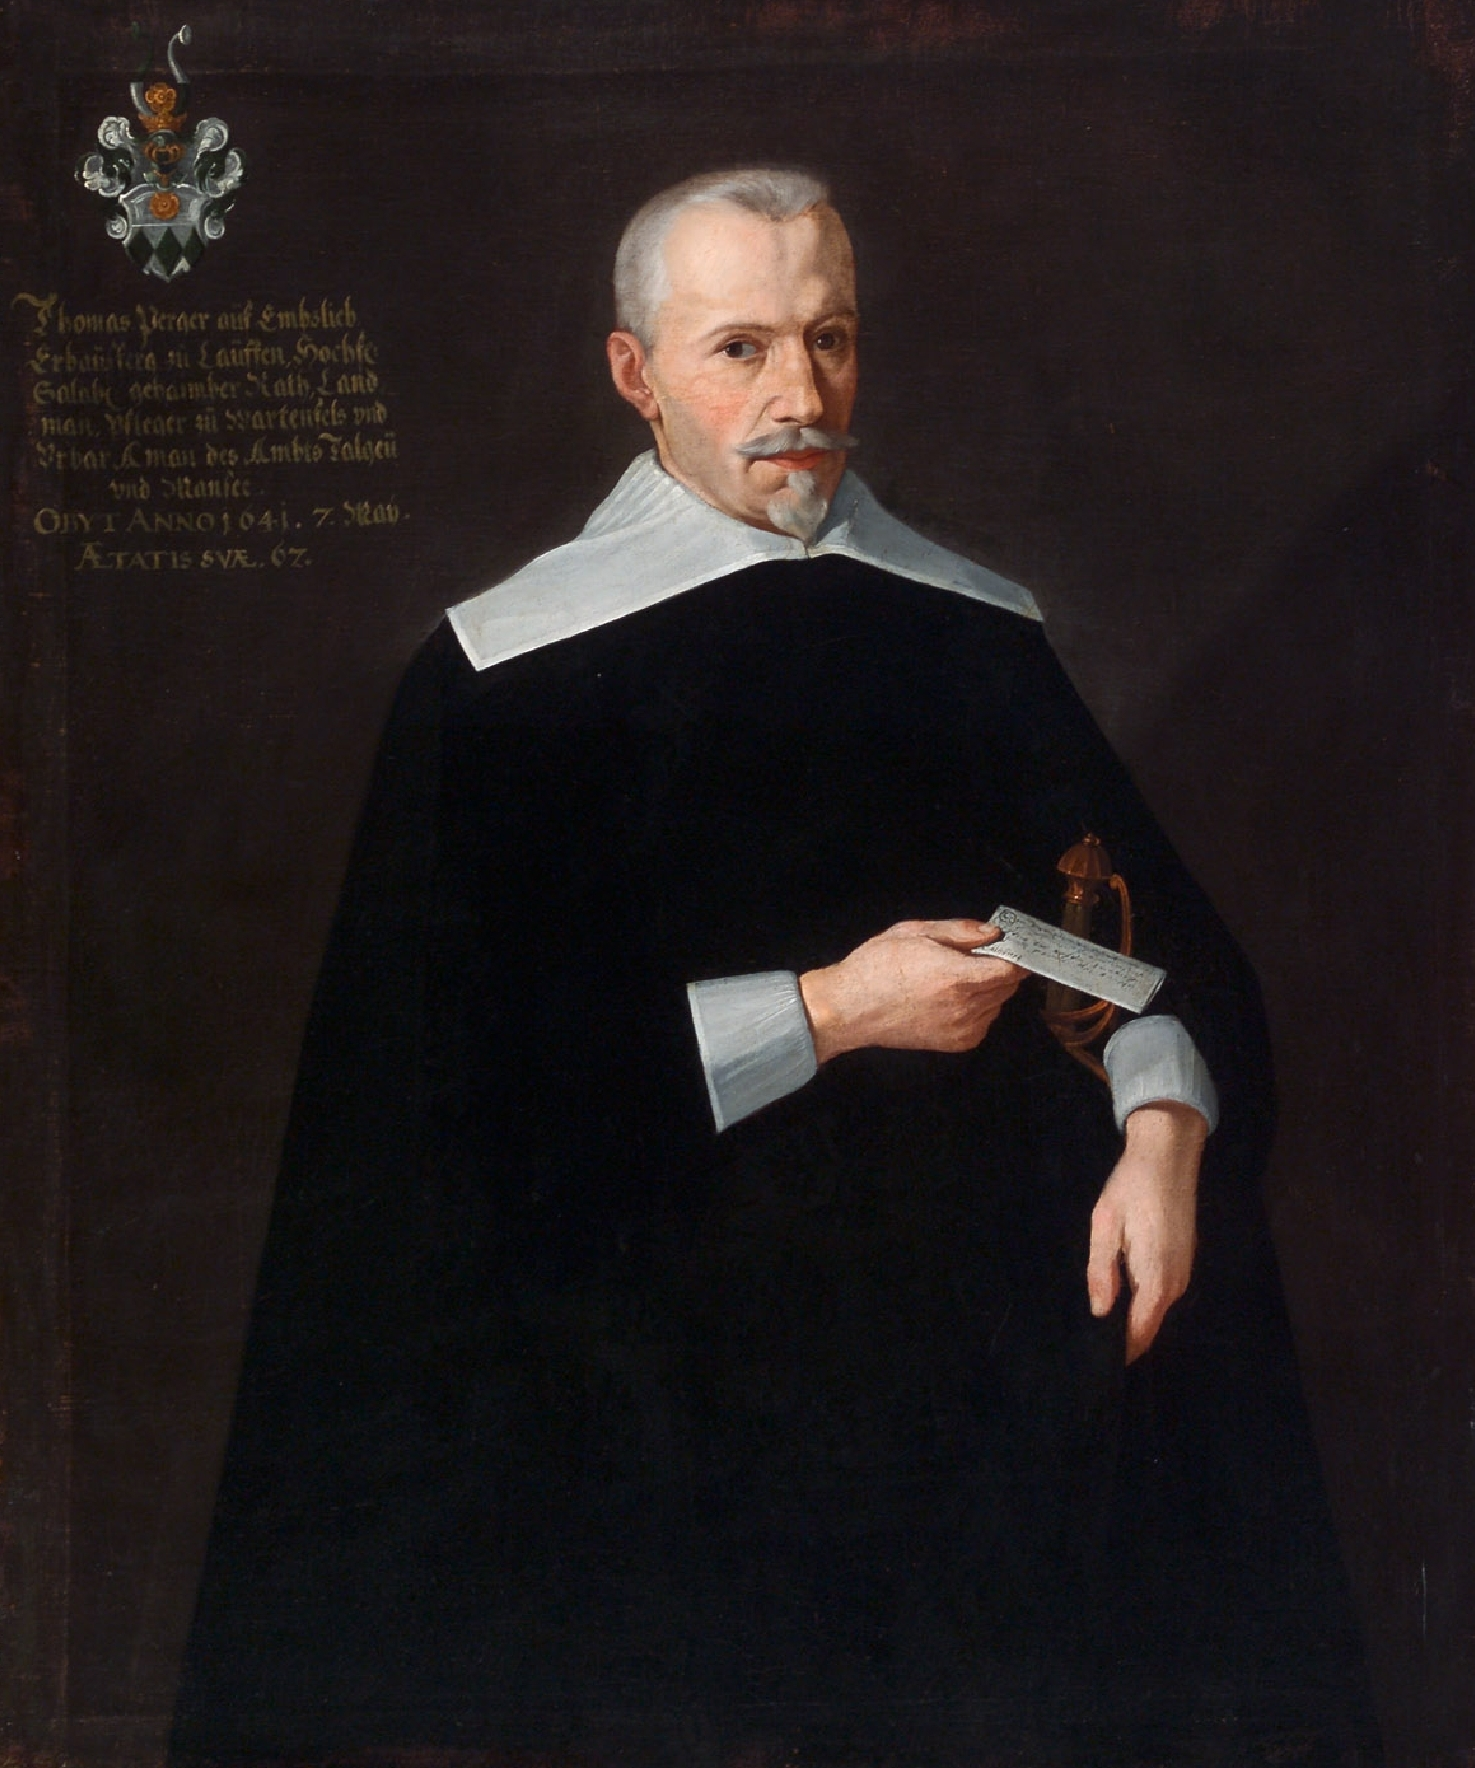 Portrait of the privy councillor Thomas Perger auf Emslieb, unknown artist, ca. 1640, oil on canvas, inv. no. 28-27